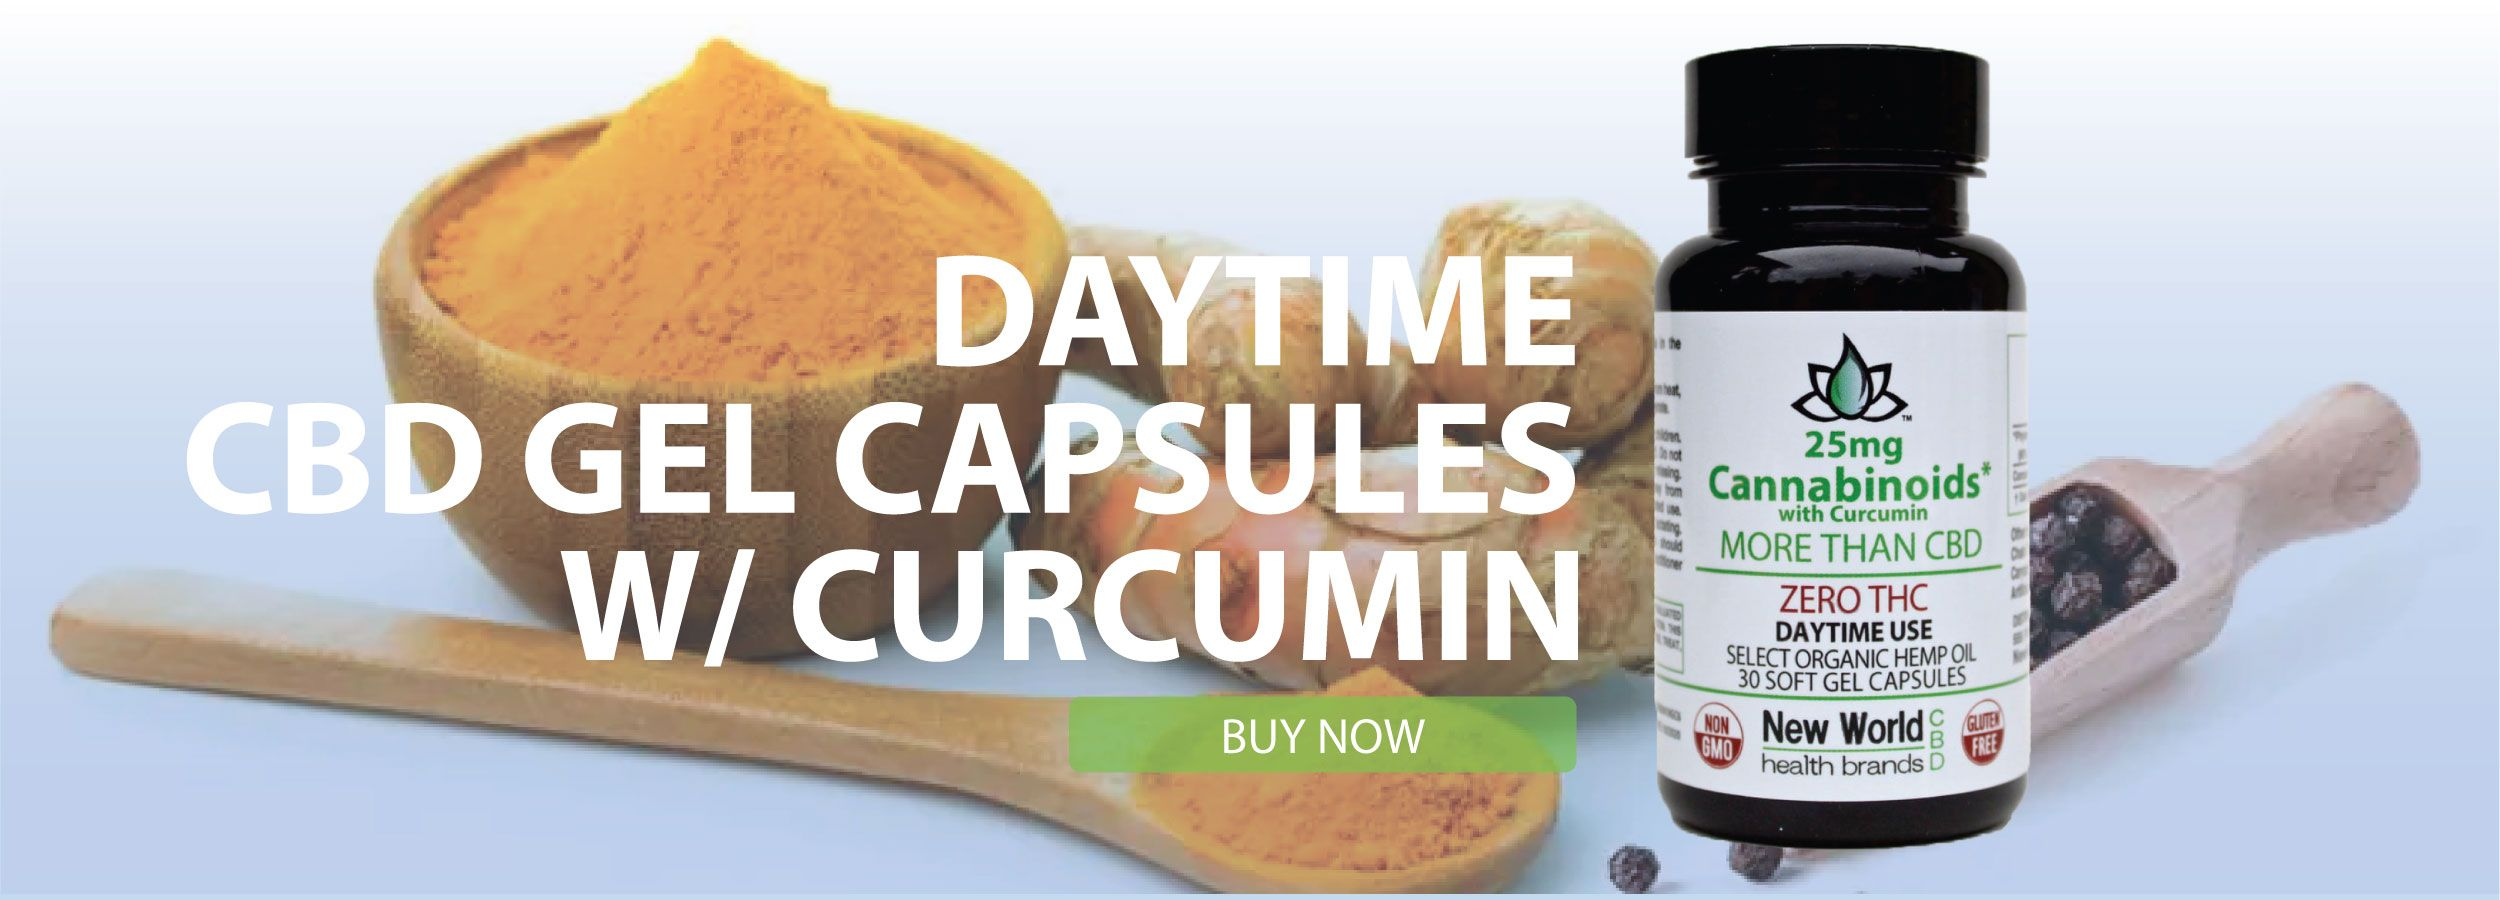 Check out our 25mg Soft Gel Capsules for Daytime with curcumin